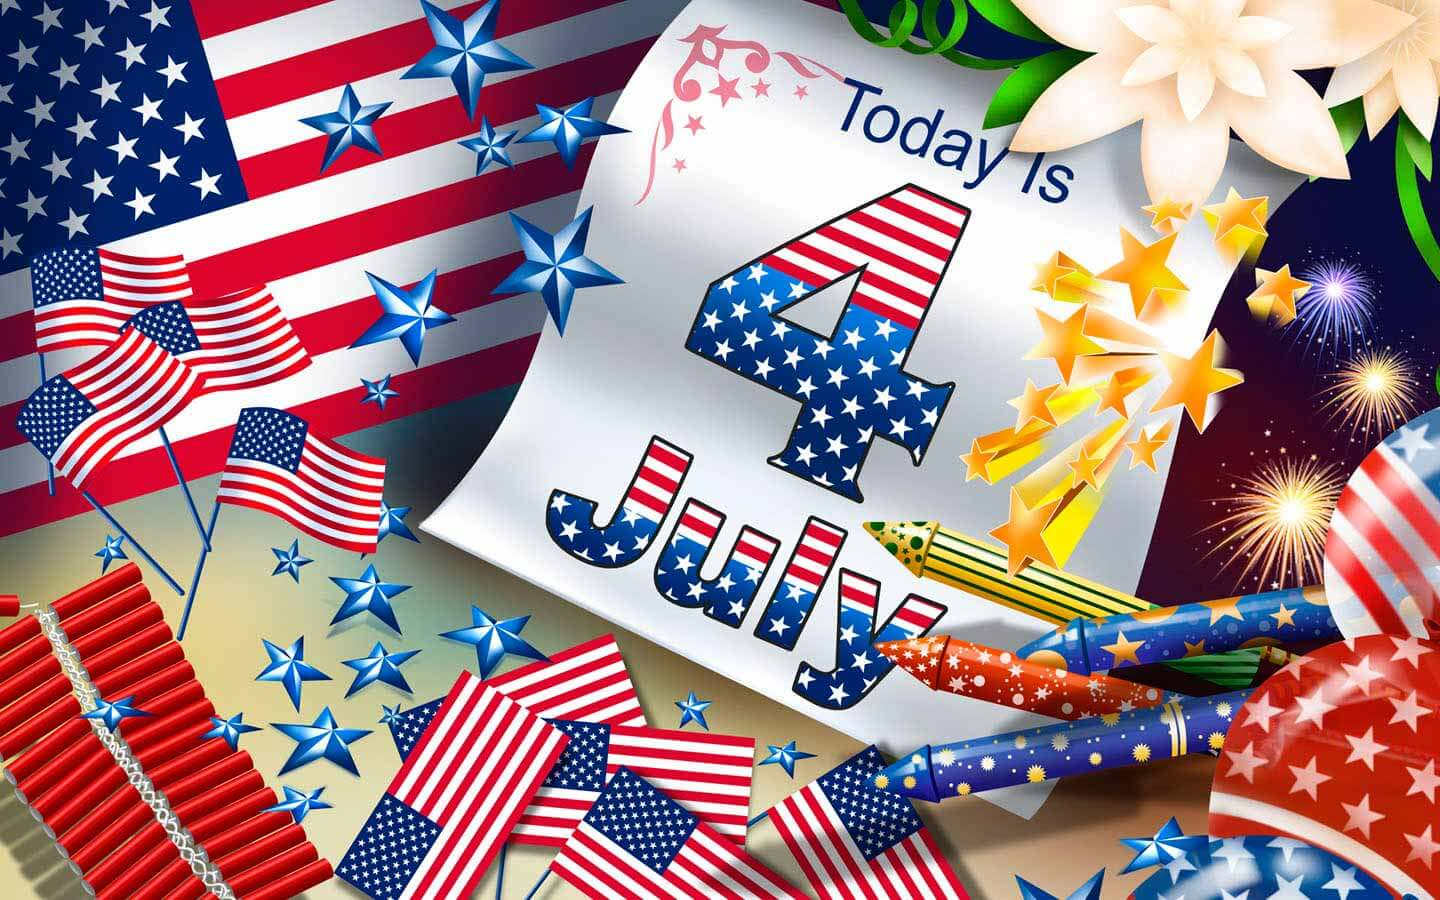 us independence day today is july 4